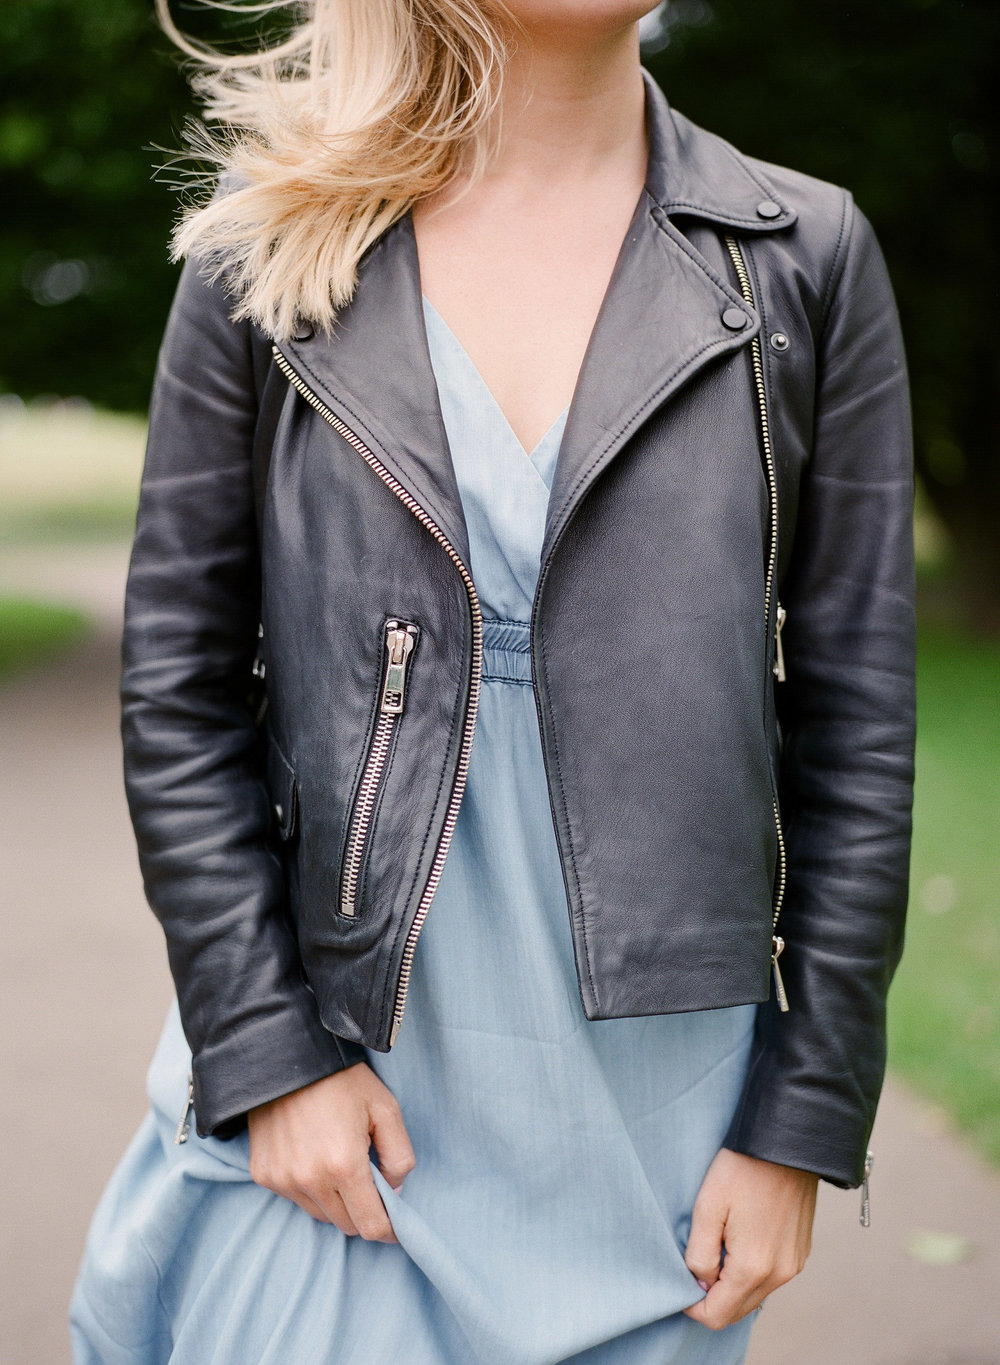 leather jacket and blue dress in london fashion by imogen xiana